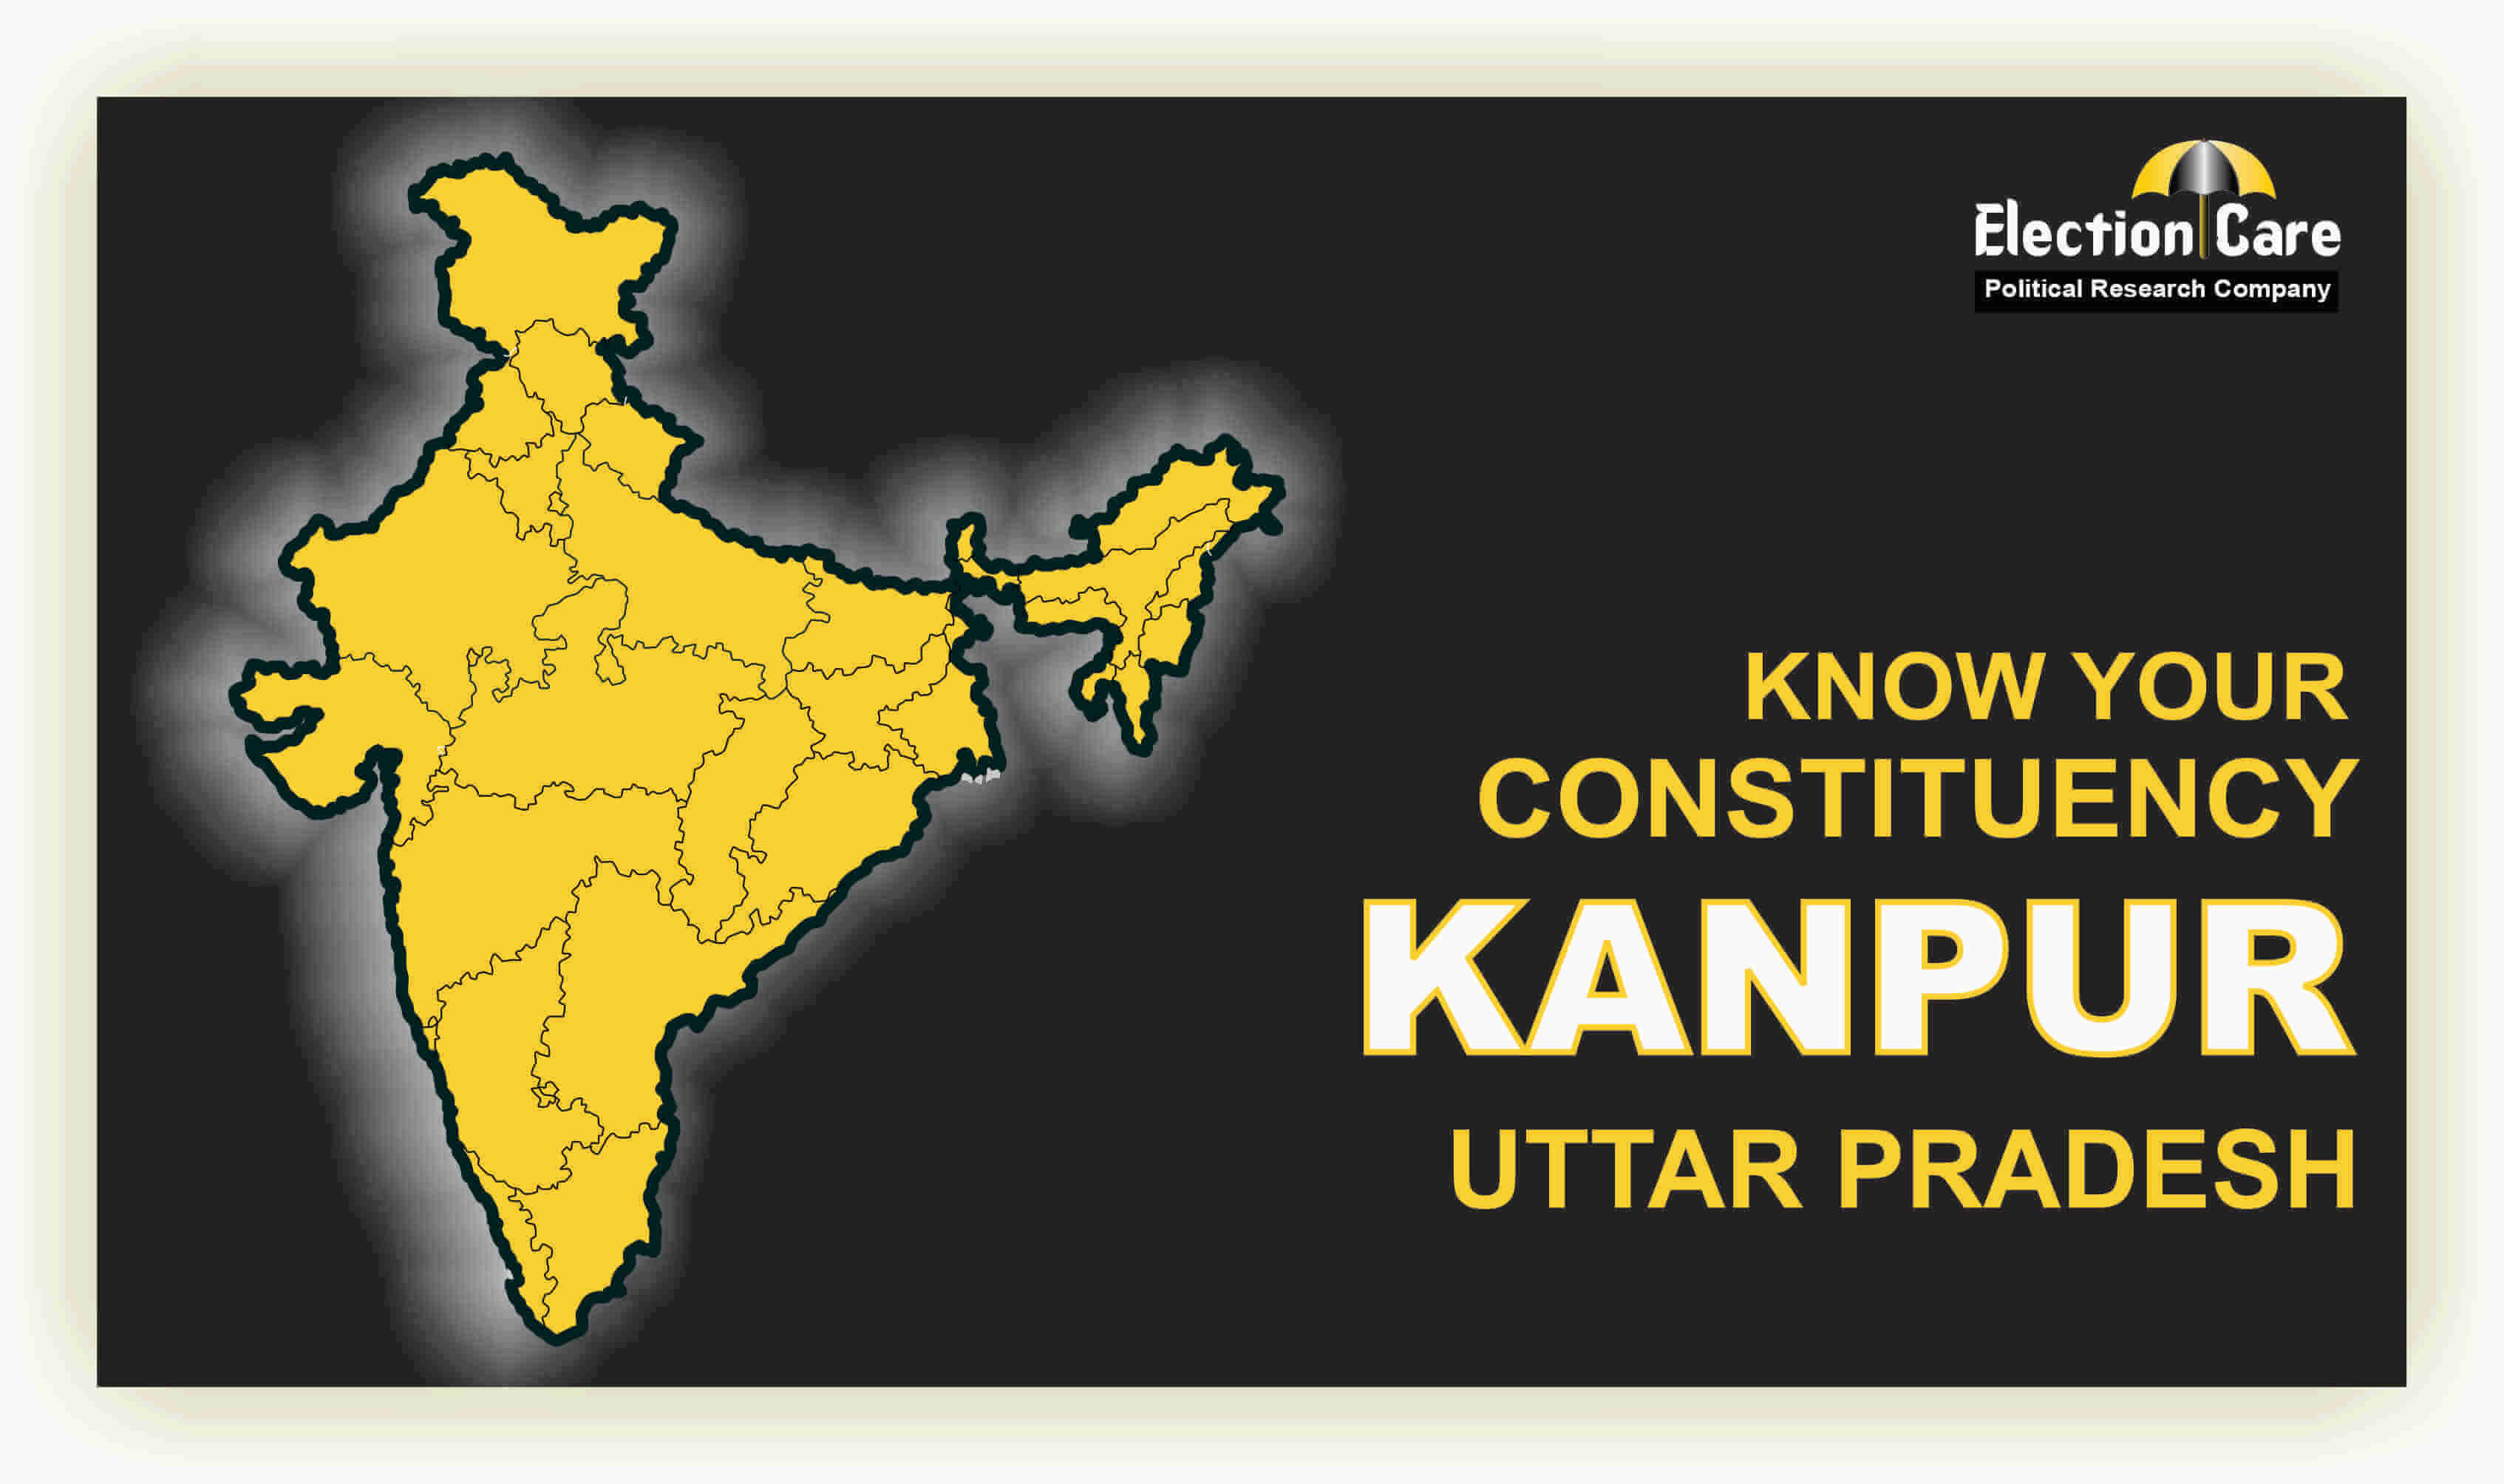 Kanpur Parliament Election Result